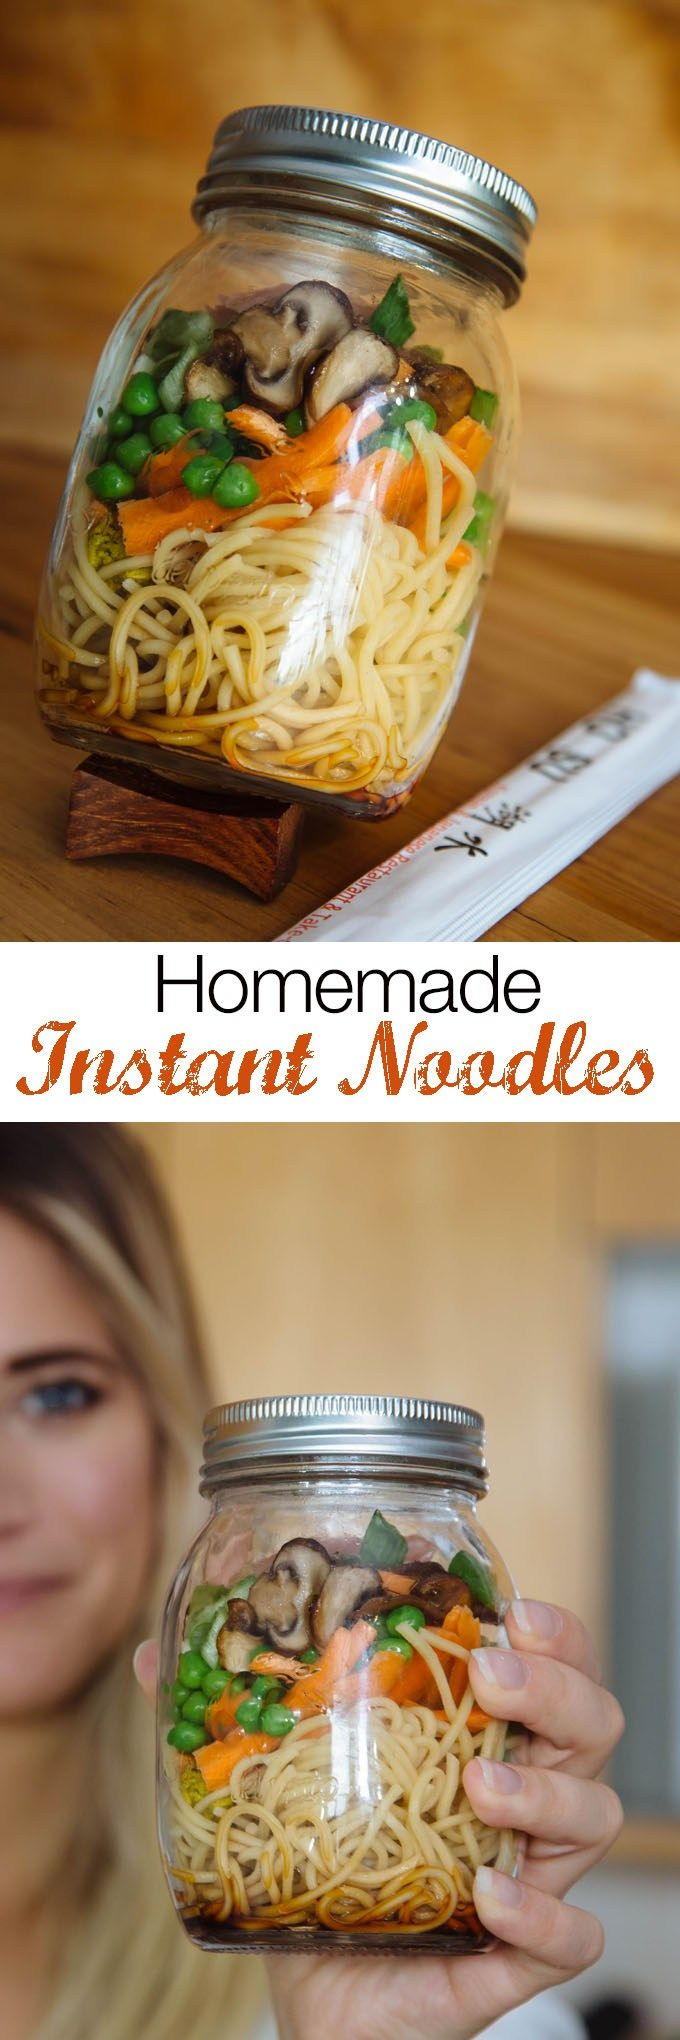 How to make Instant Noodles. Learn how to make home-made instant noodles bowls perfect for a quick lunch or snack. Make these once a week and take them to work or school for lunch! This is an easy, quick and delicious recipe that is totally vegan! _ Will would love this! He's eat cup of noodles all week if I had no say ; )